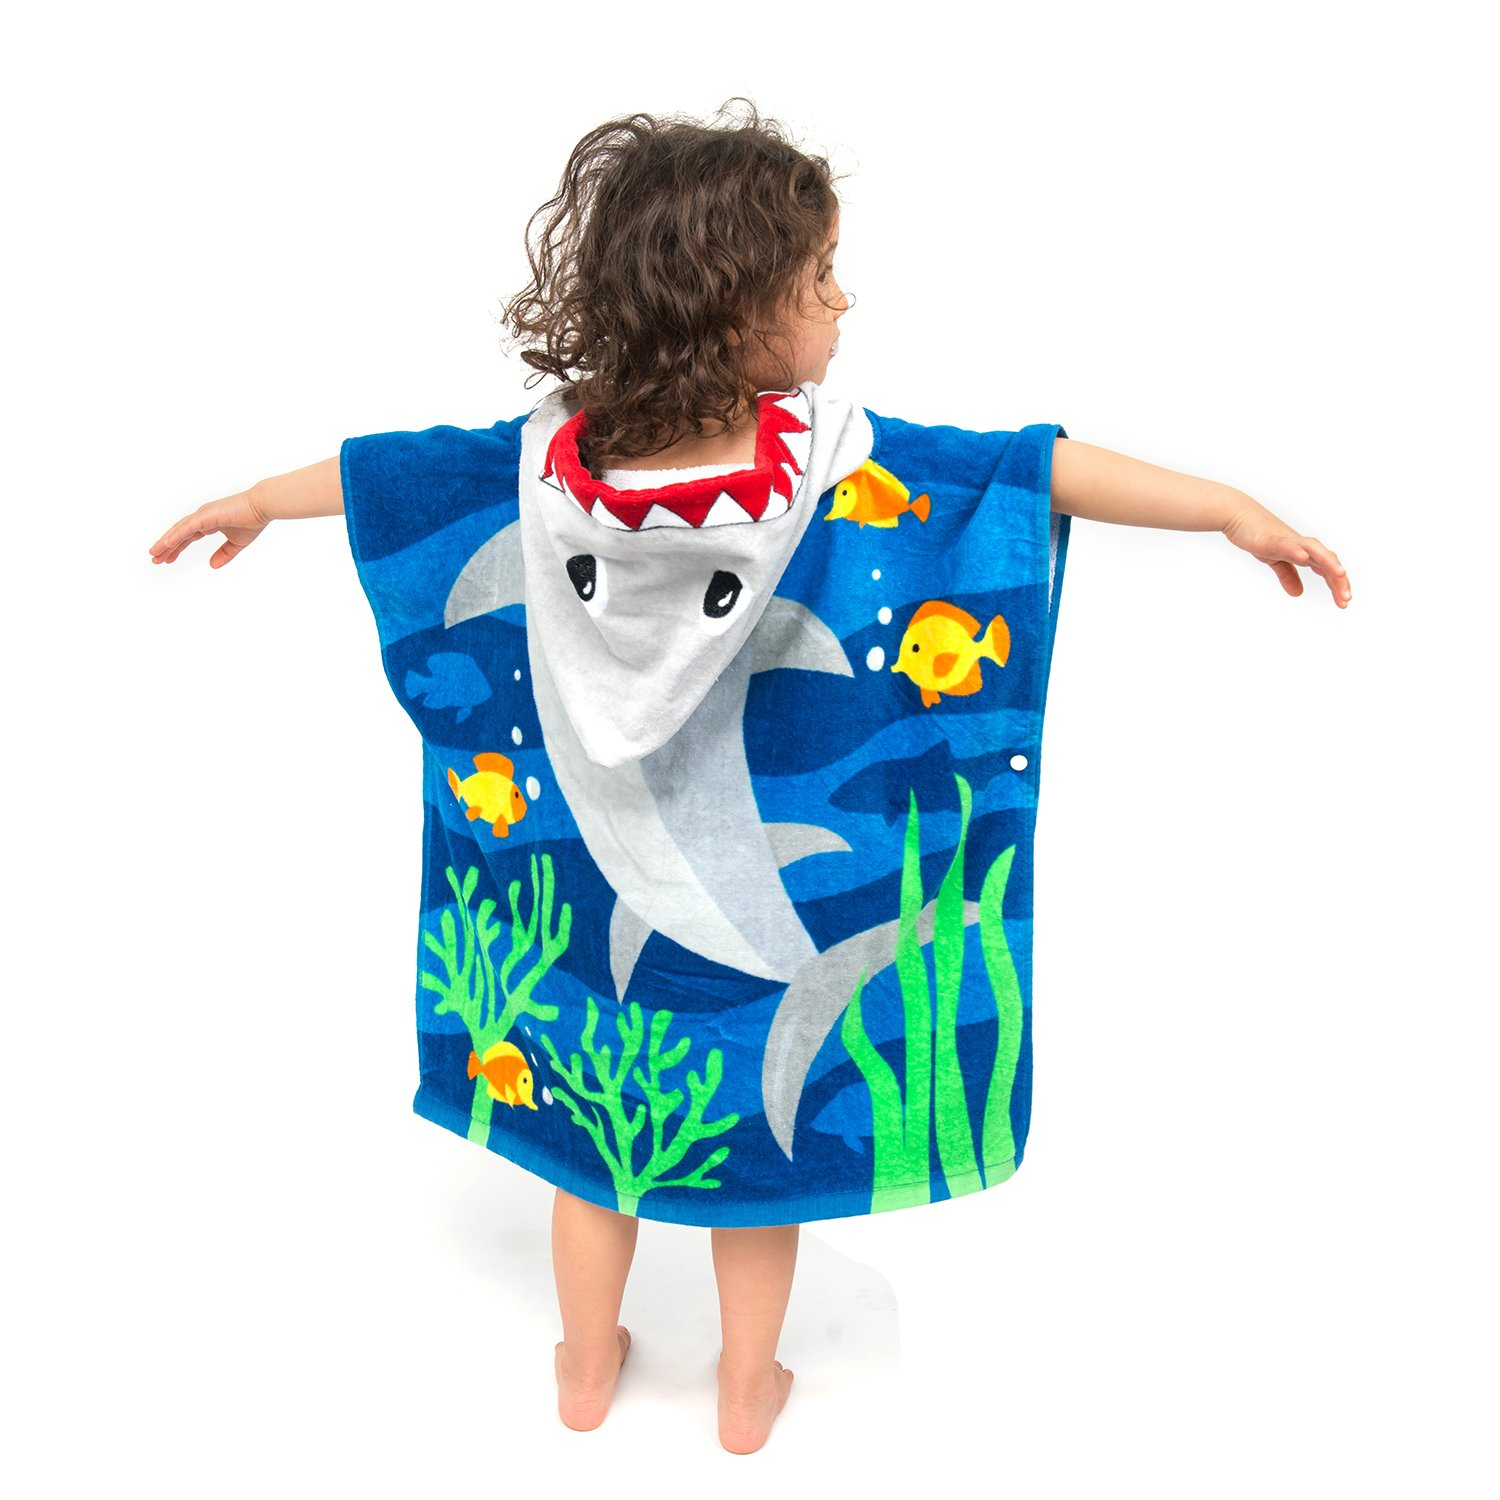 ZINGLIFE Hooded Towels for Kids Baby Boys Girls Toddlers Child Poncho Bath Towel for Beach Pool 100% Cotton Ultra Breathable Soft Enough Thick for Winter Size 24'' x 47''(Brave Shark) by ZINGLIFE (Image #1)